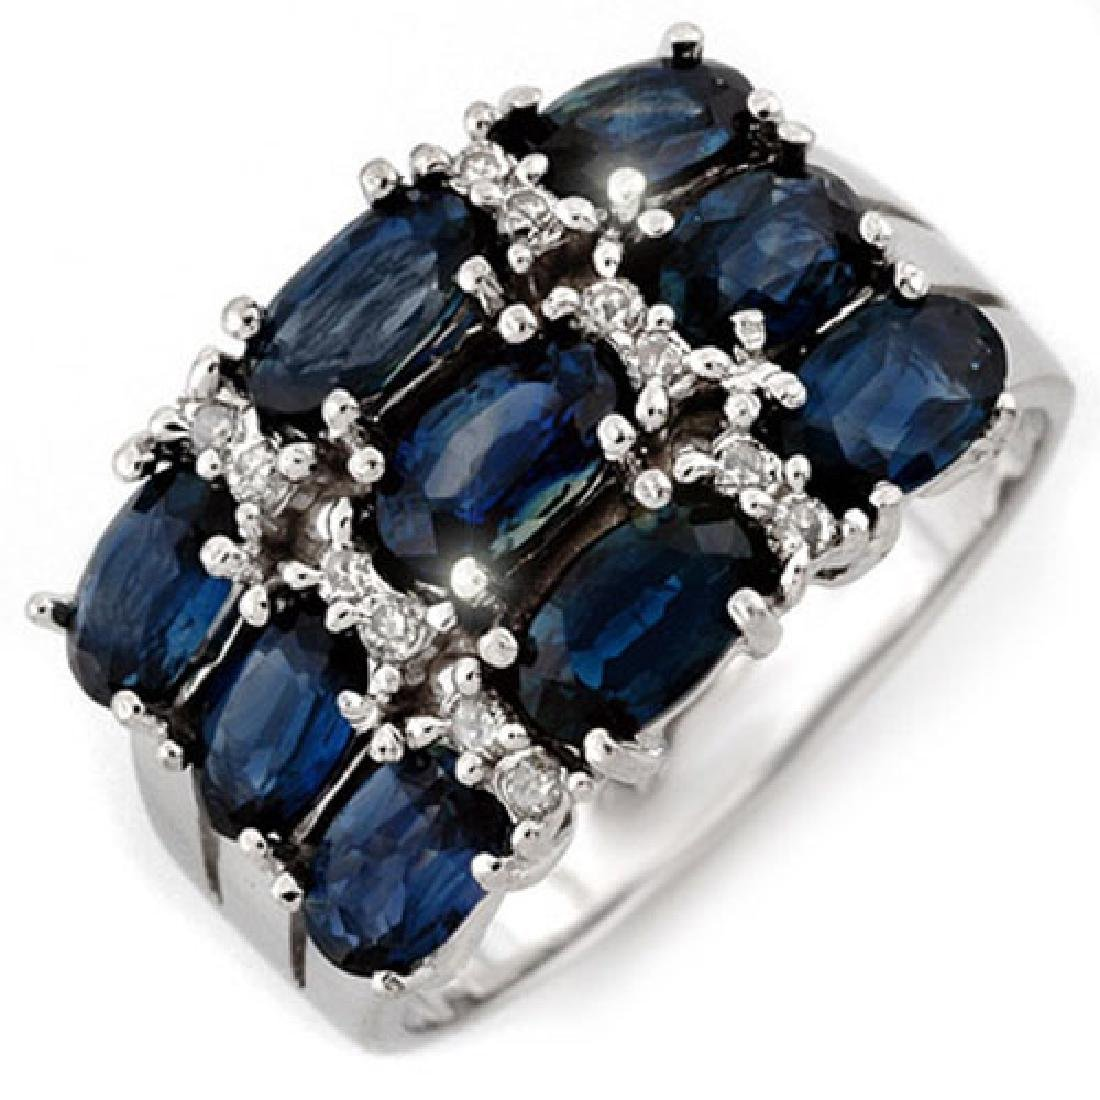 3.15 CTW Blue Sapphire & Diamond Ring 18K White Gold